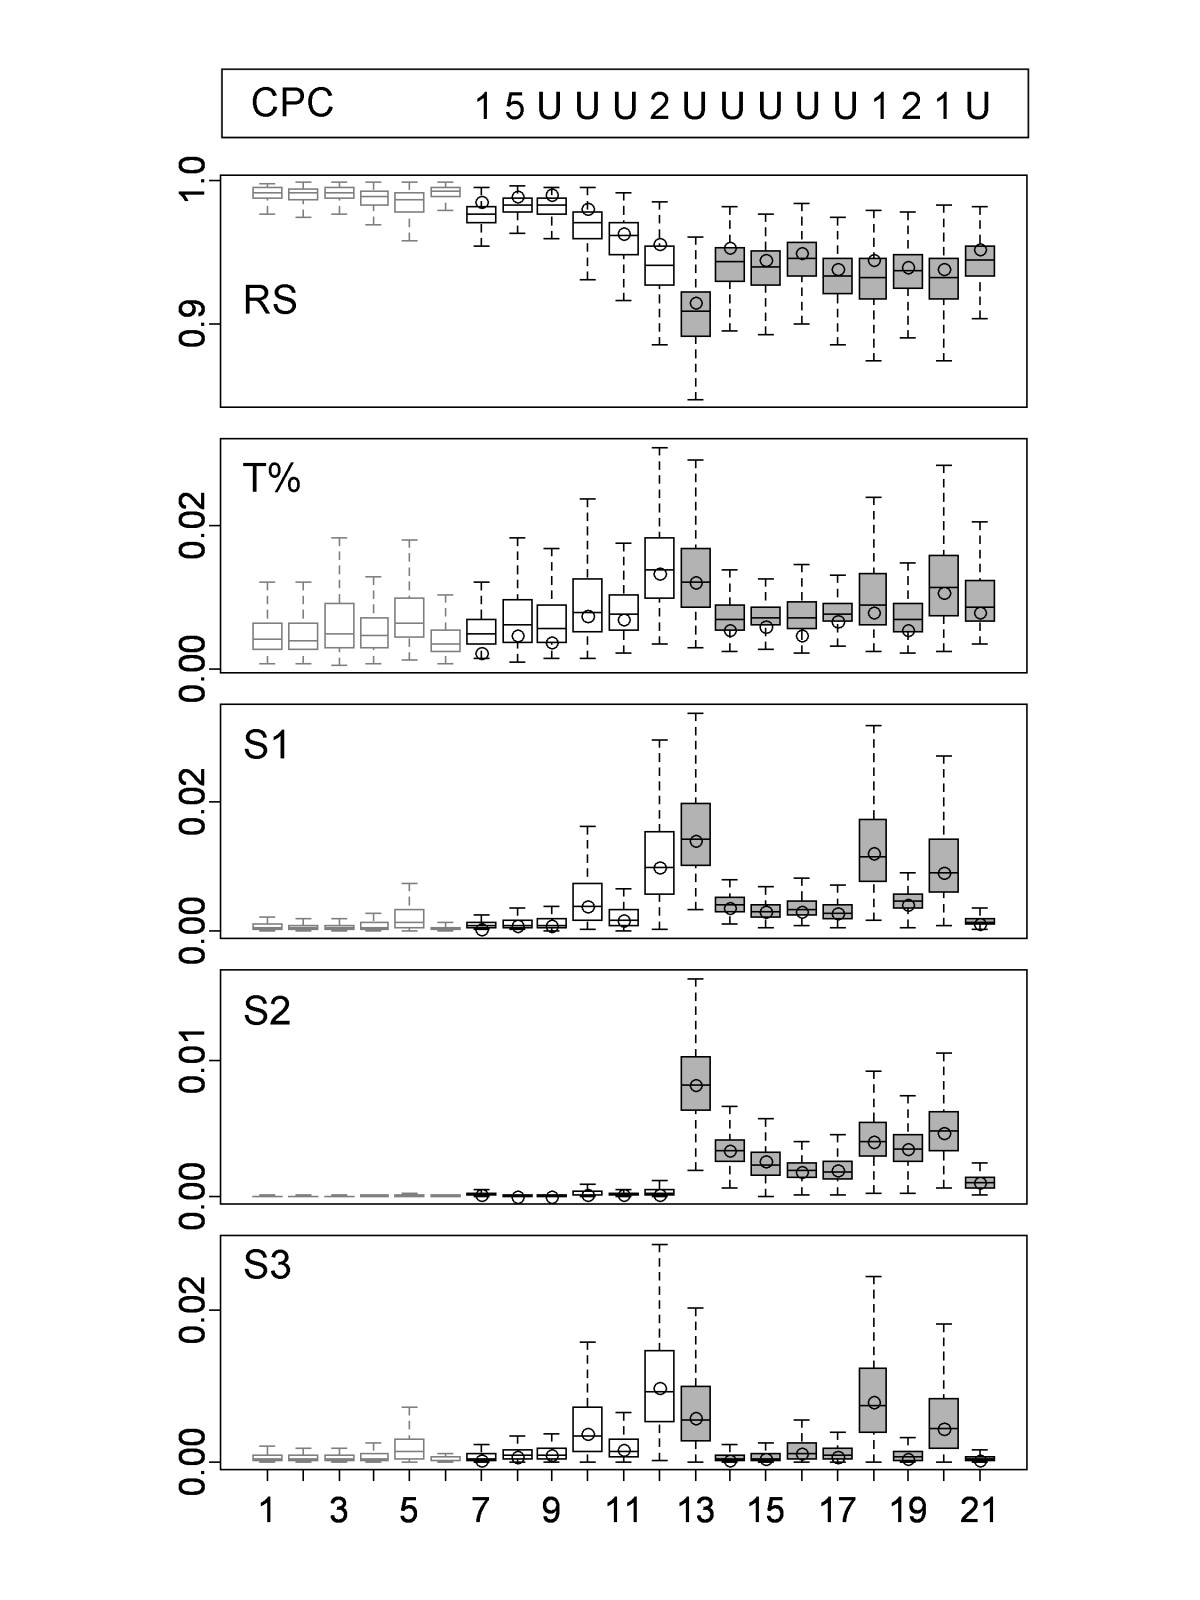 https://static-content.springer.com/image/art%3A10.1186%2F1471-2148-12-222/MediaObjects/12862_2012_Article_2258_Fig5_HTML.jpg